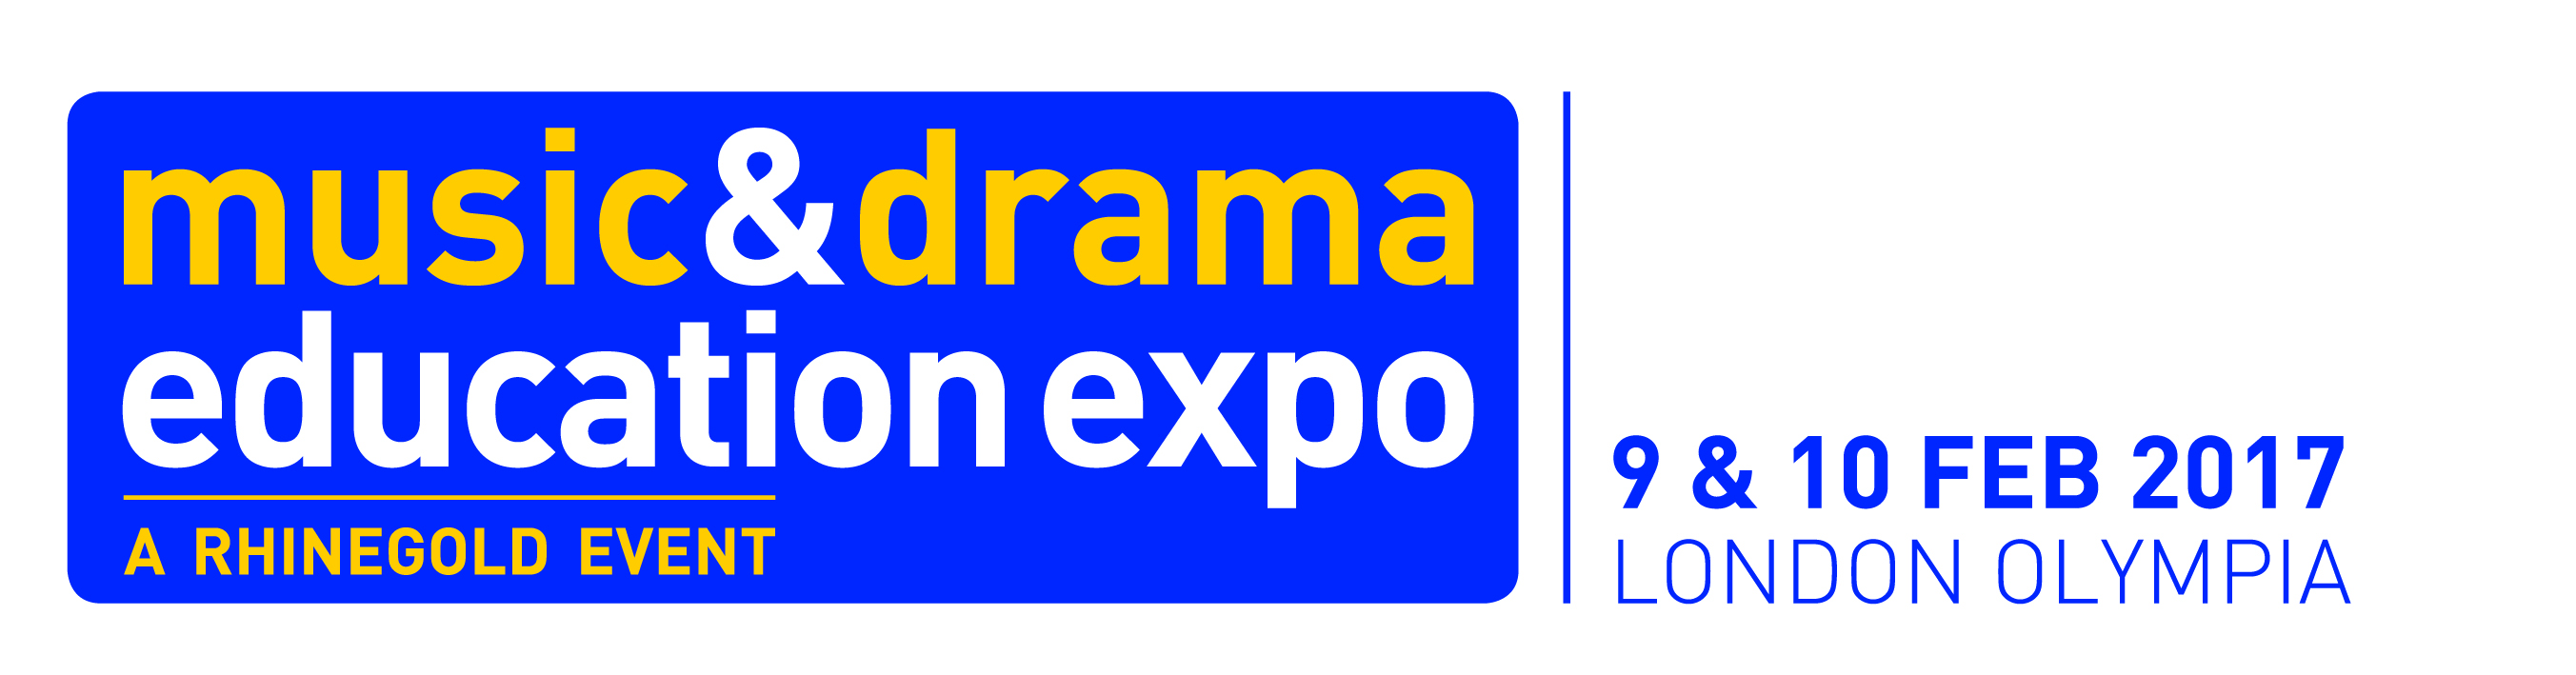 Come and meet us at the Music & Drama Education Expo